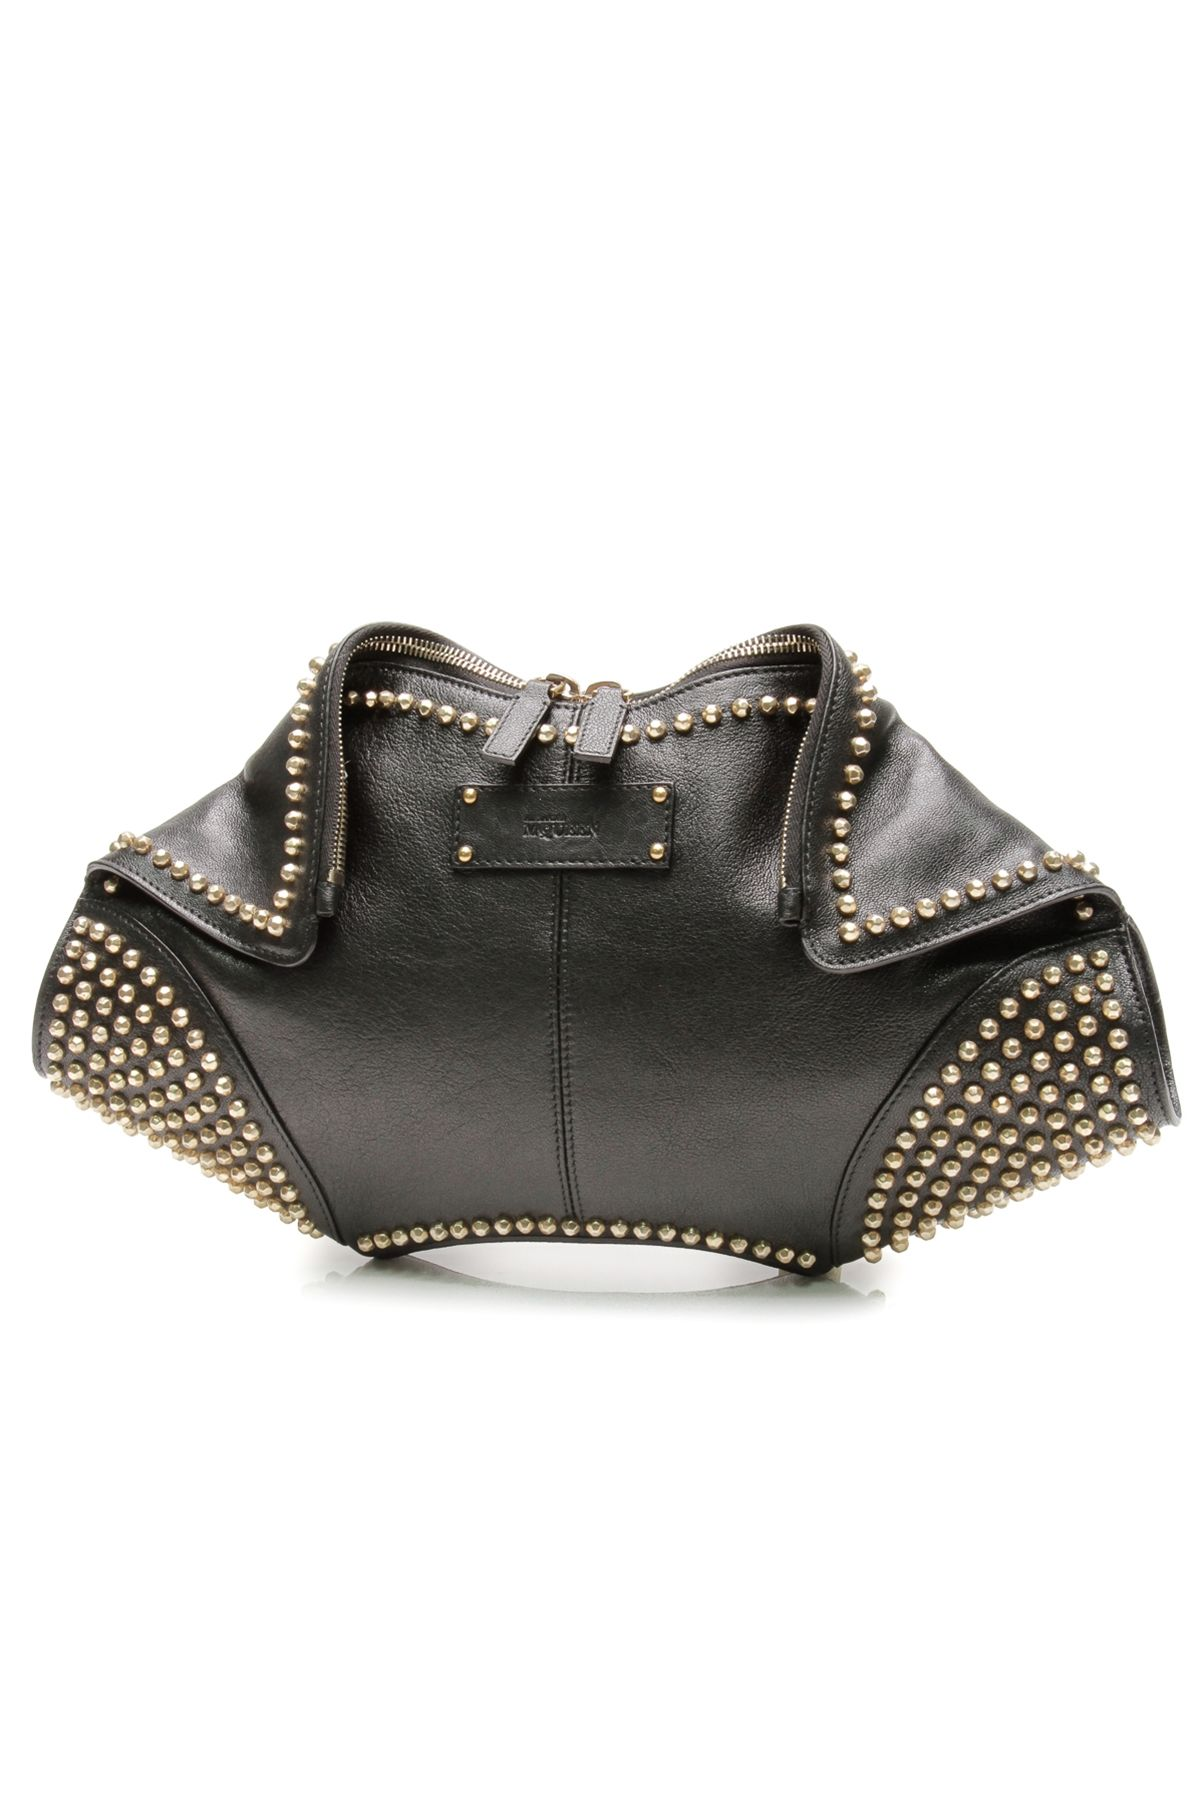 Pre-owned - Manta leather clutch bag Alexander McQueen EY91Ac9